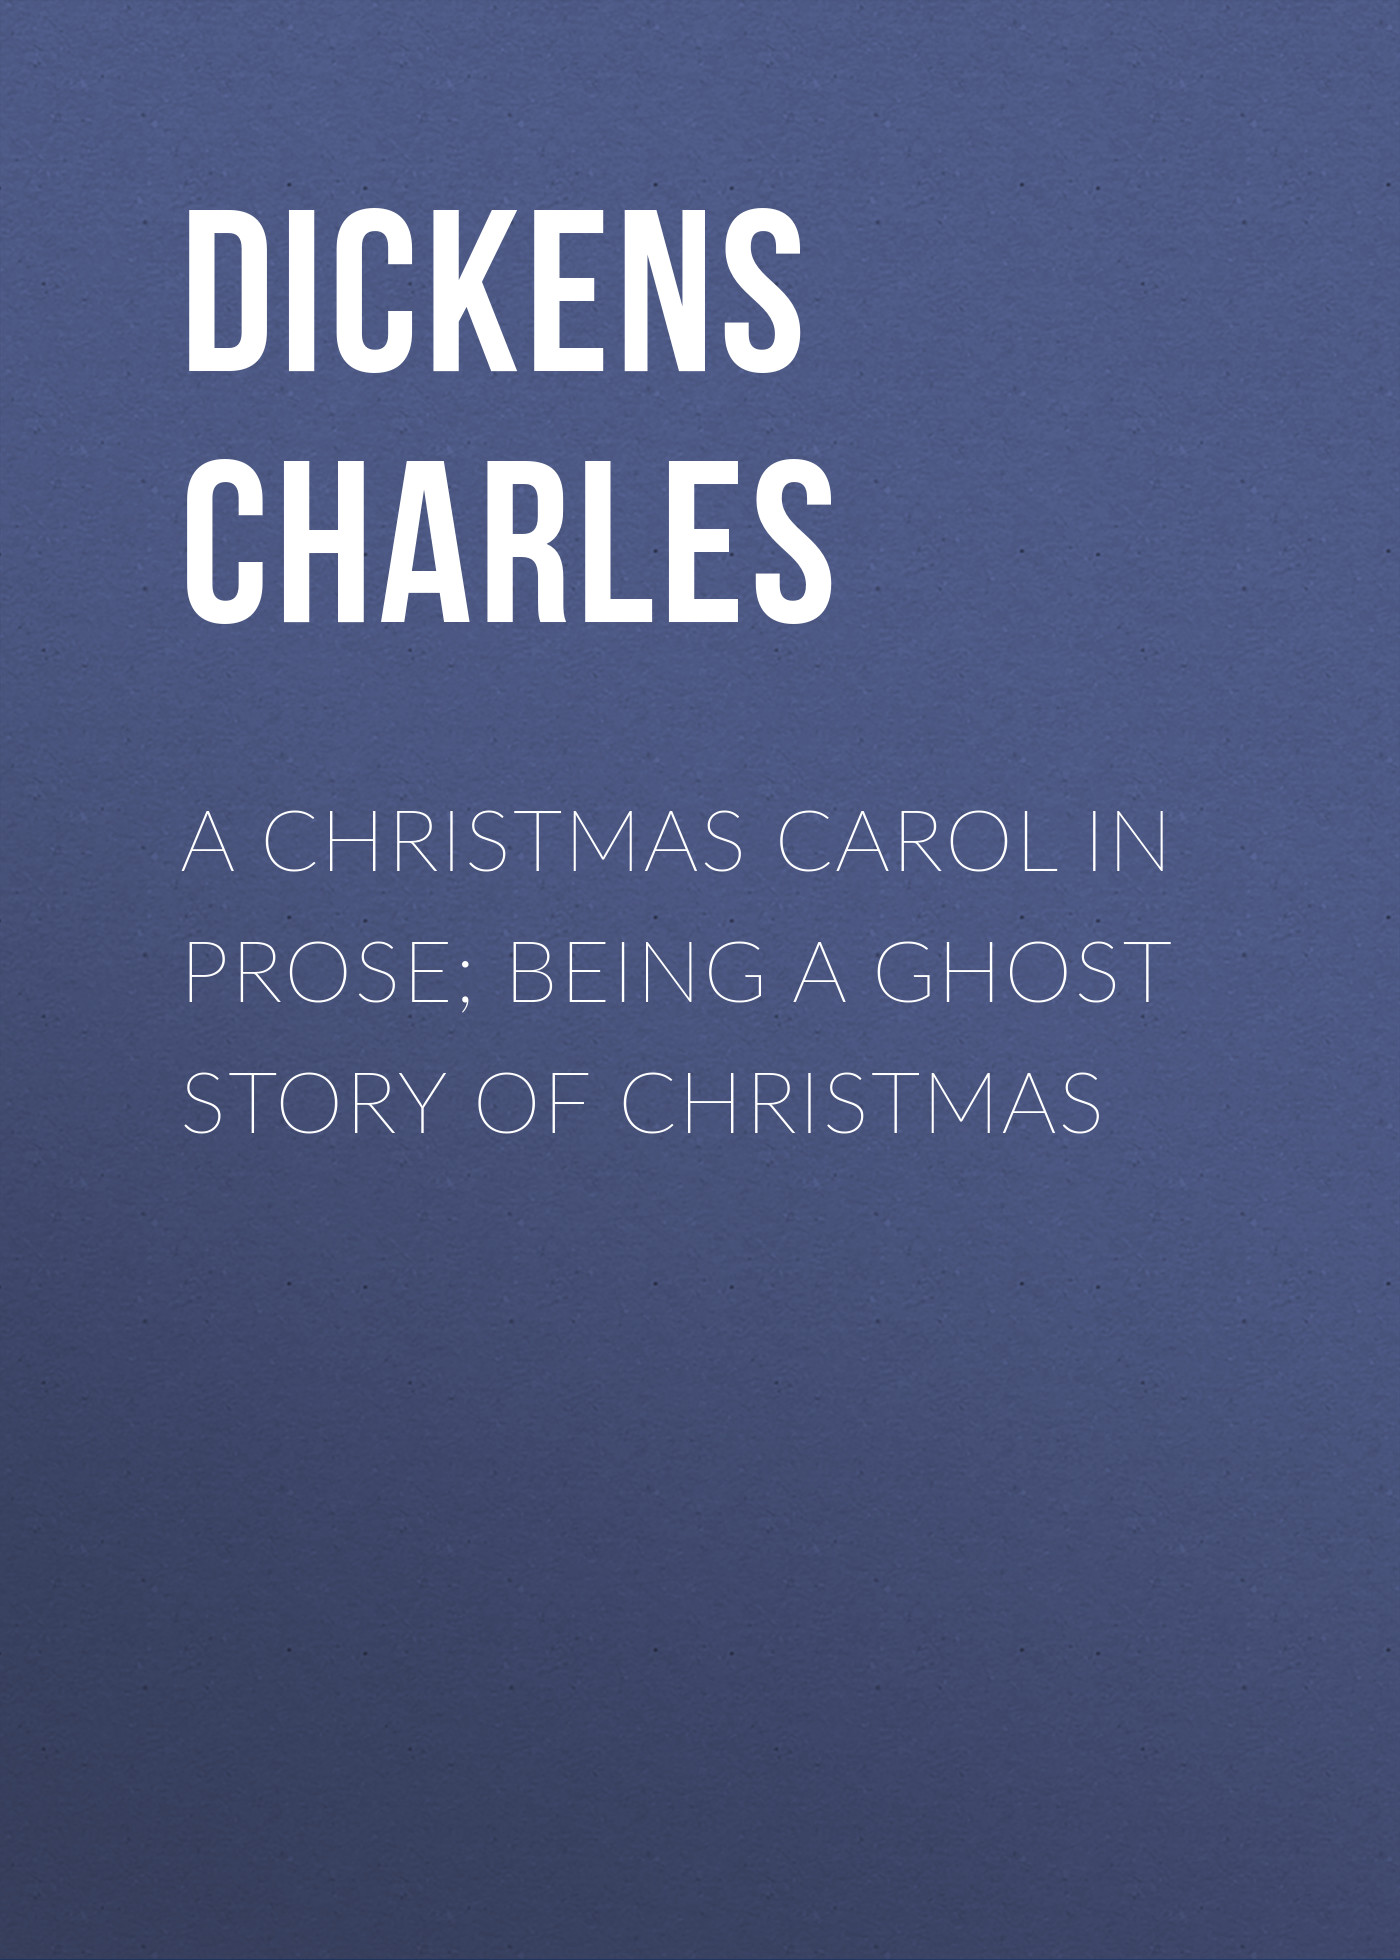 Чарльз Диккенс A Christmas Carol in Prose; Being a Ghost Story of Christmas чарльз диккенс гимн рождеству связист dickens charles christmas carol the signalman